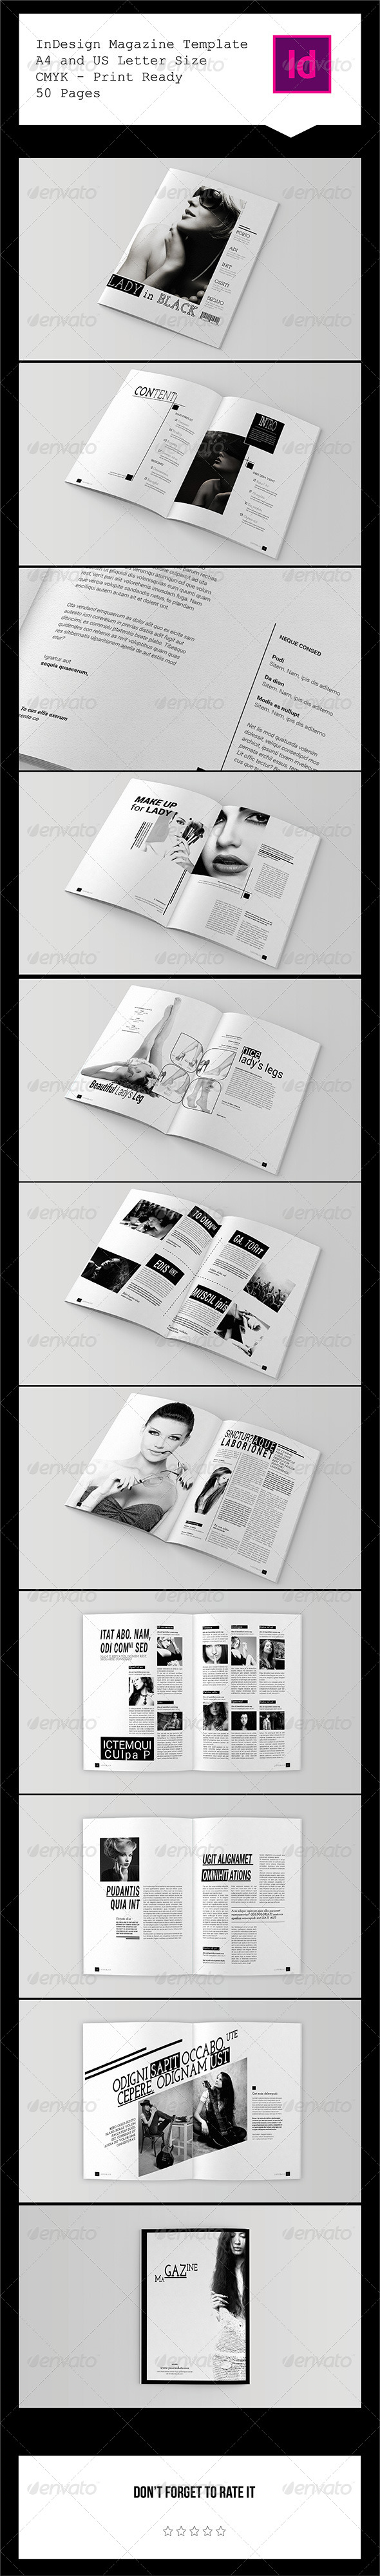 GraphicRiver InDesign Magazine Template 50 Pages 7581619